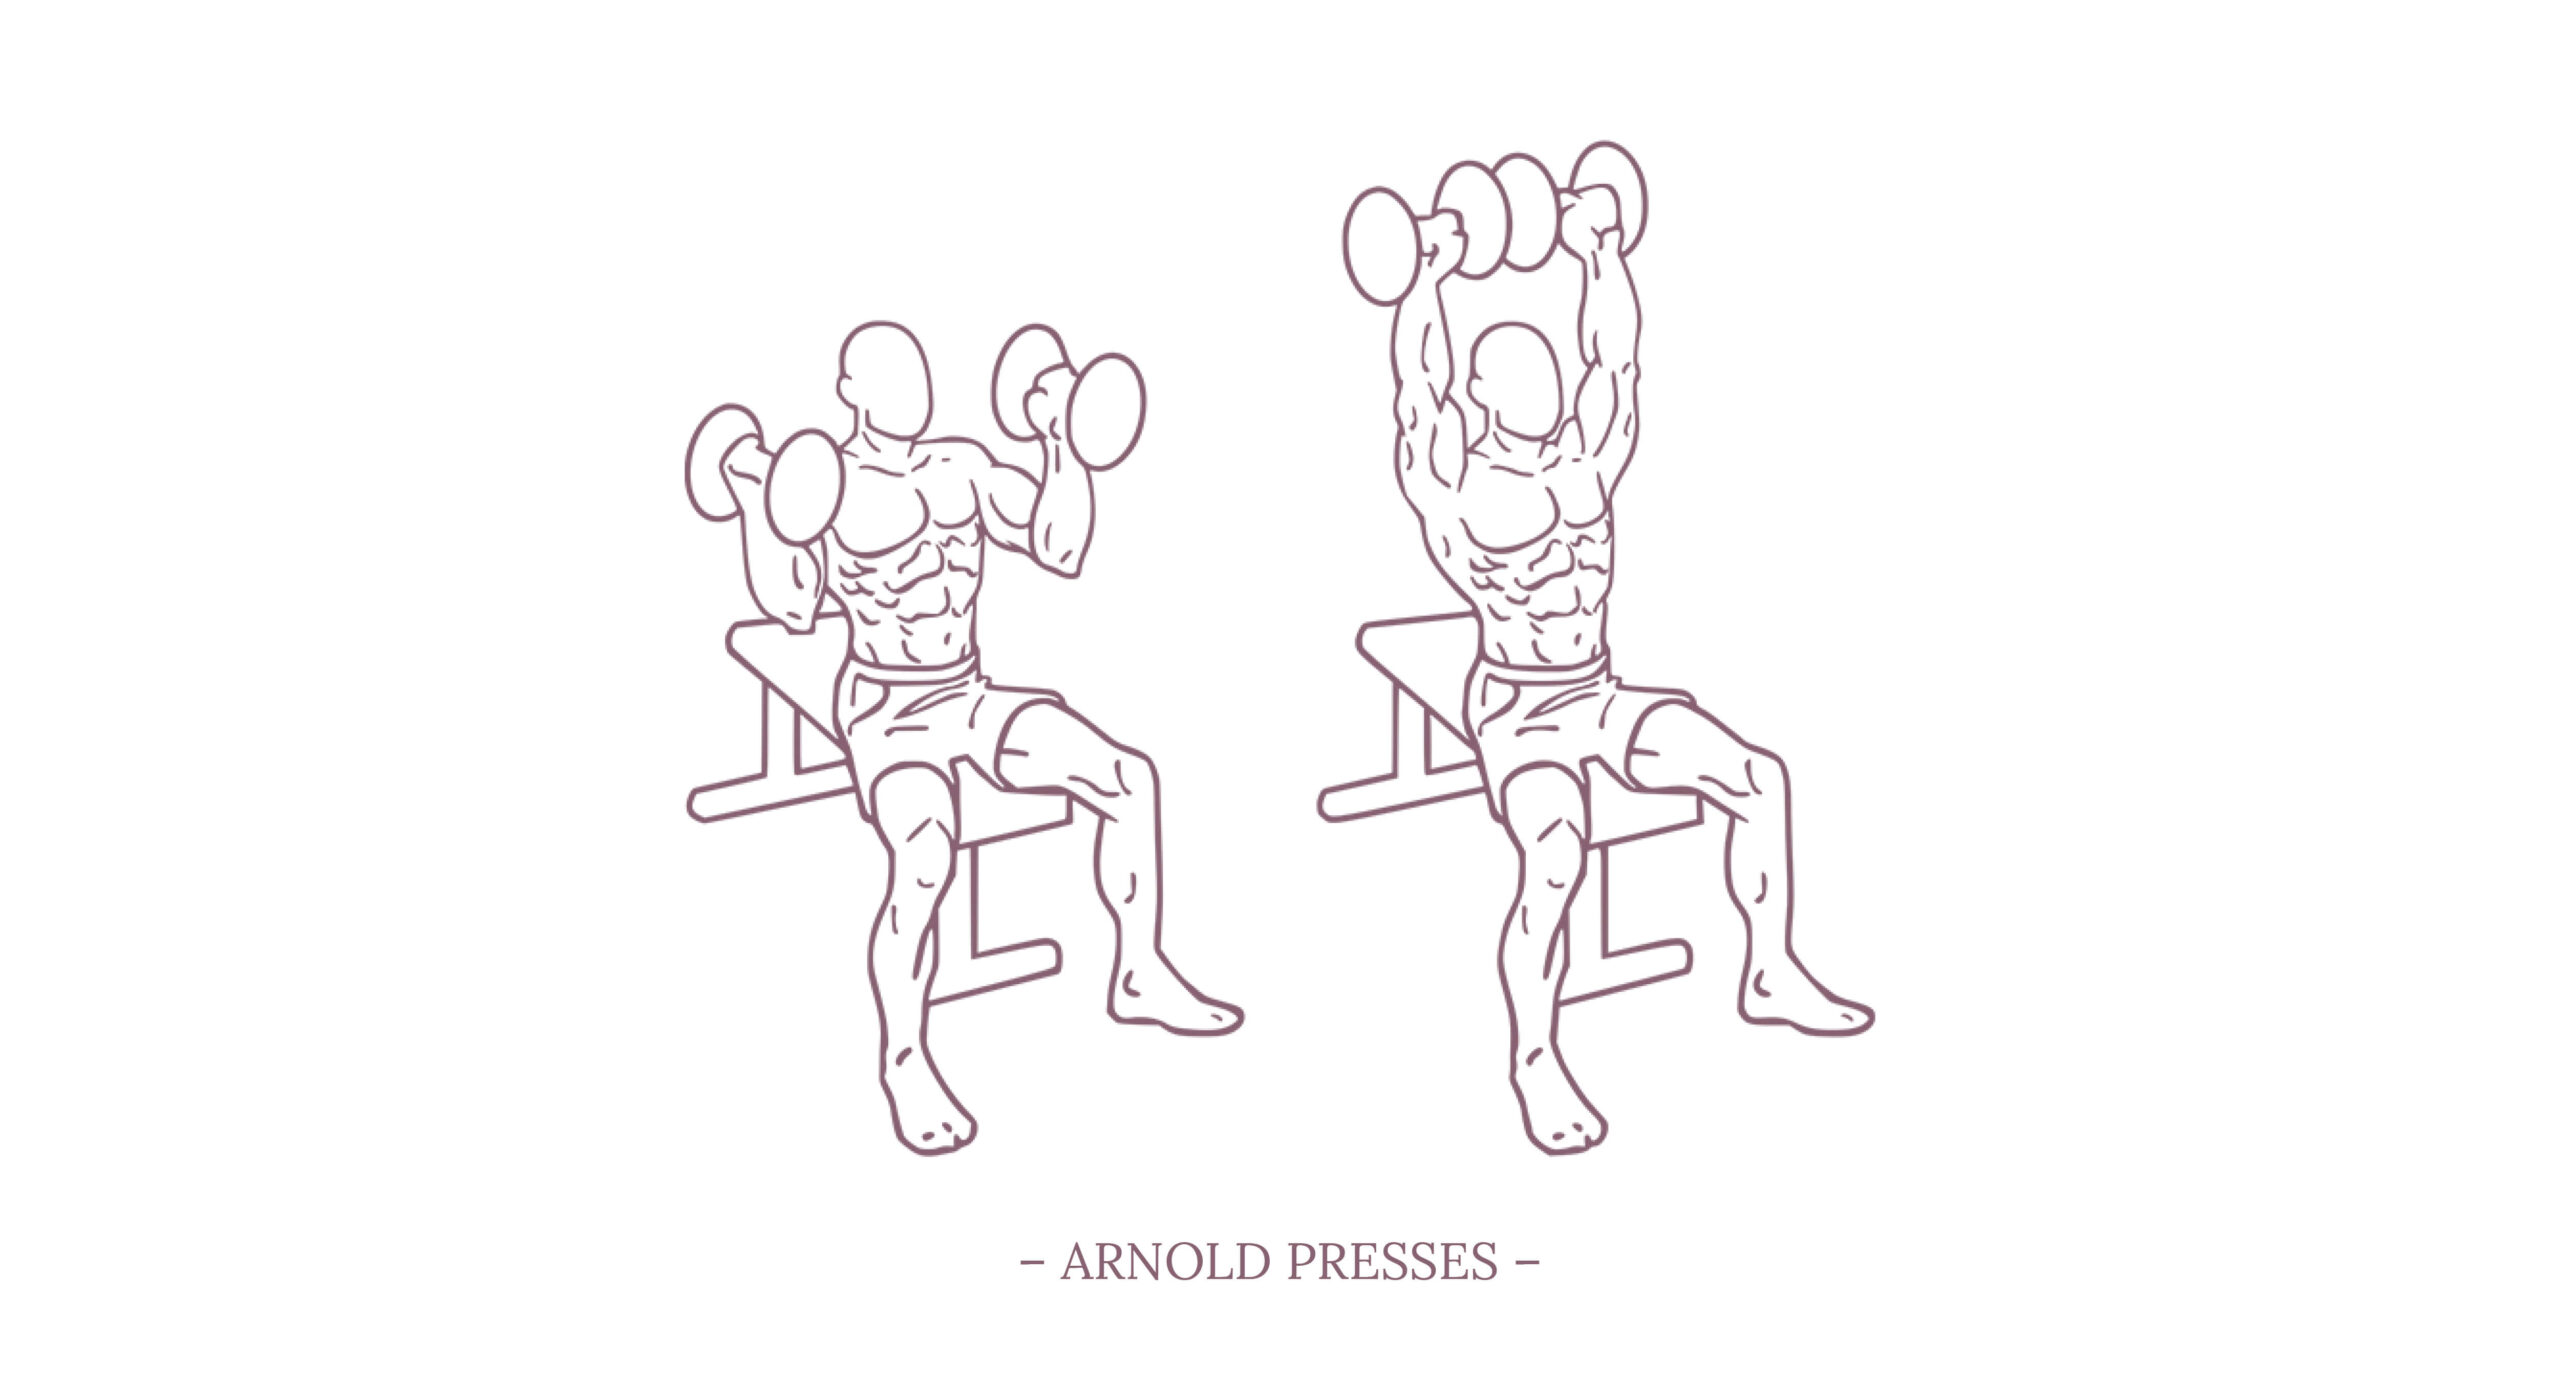 Arnold Presses Illustration